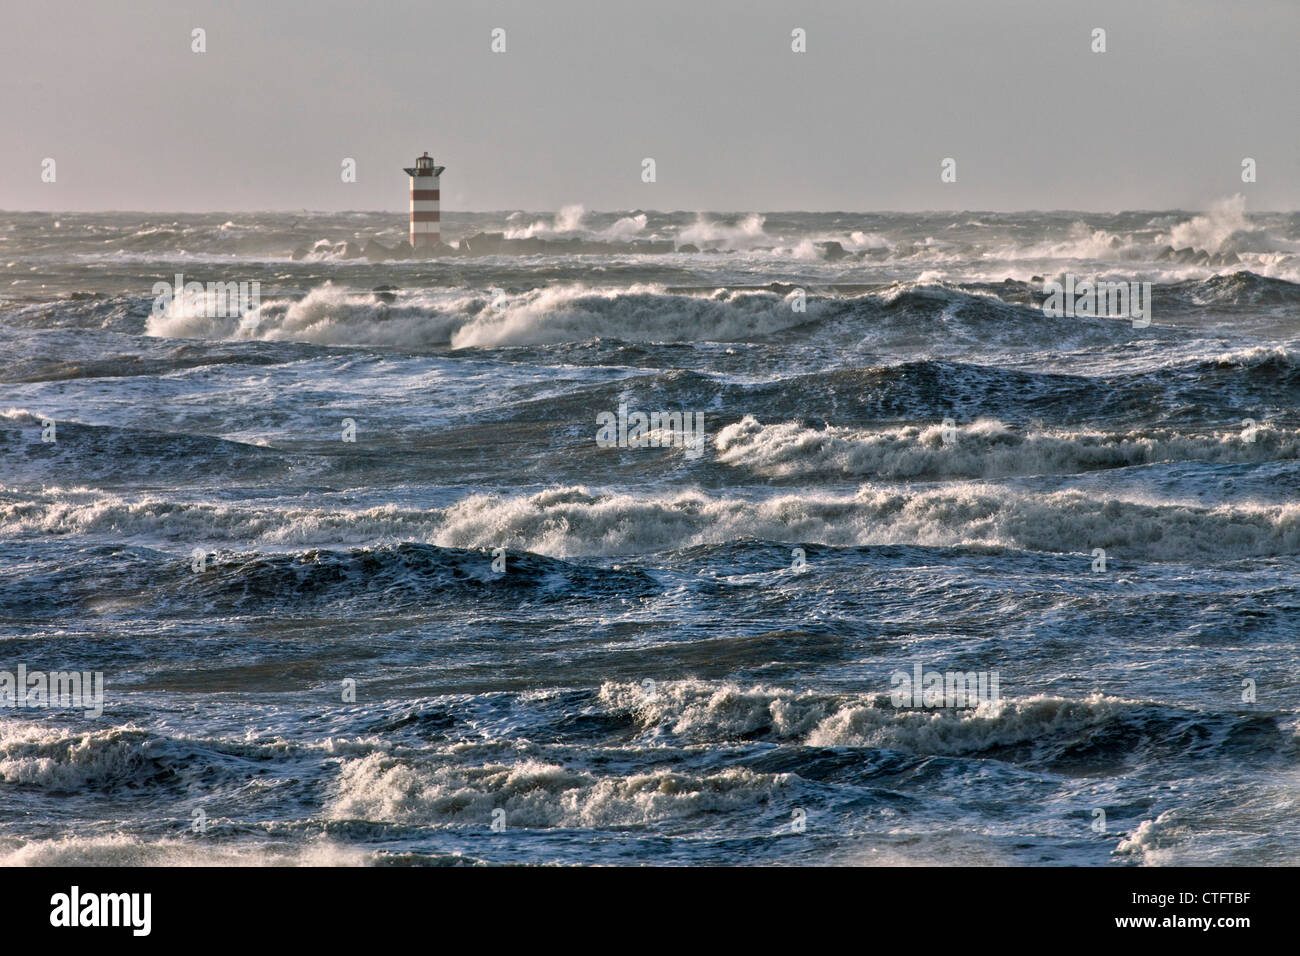 The Netherlands, IJmuiden, Storm. Waves crash against lighthouse or beacon. - Stock Image